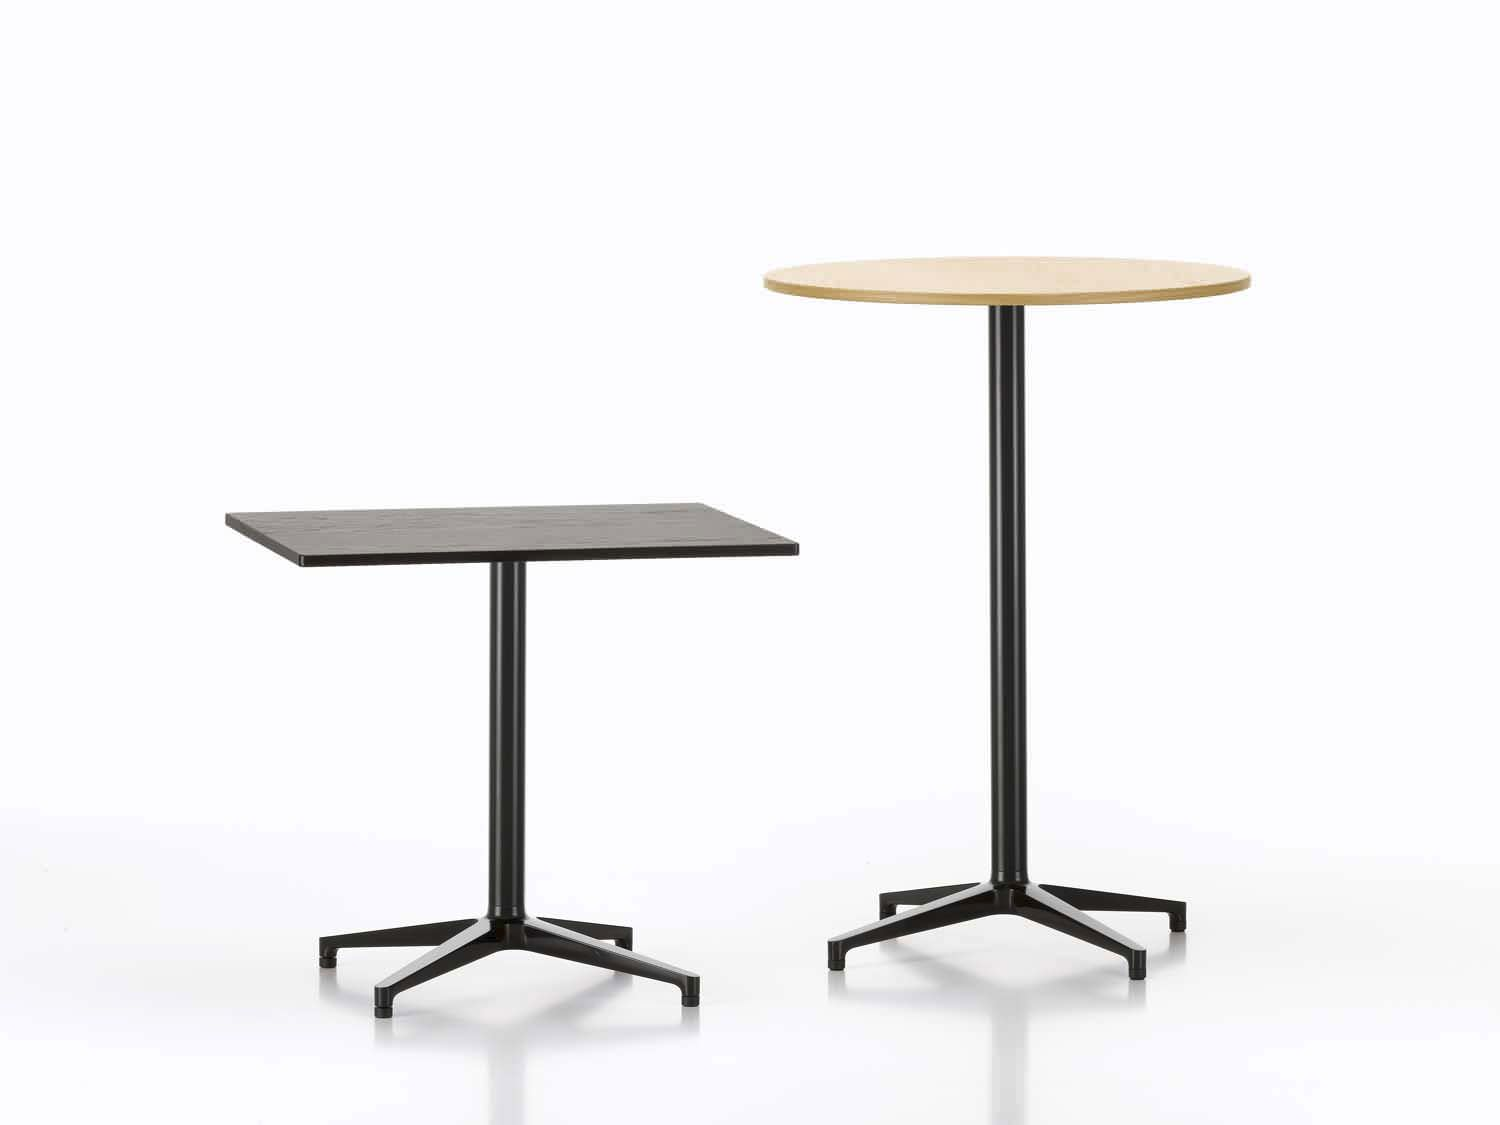 Contemporary High Bar Table / Laminate / Round / For Outdoor Use   STAND UP